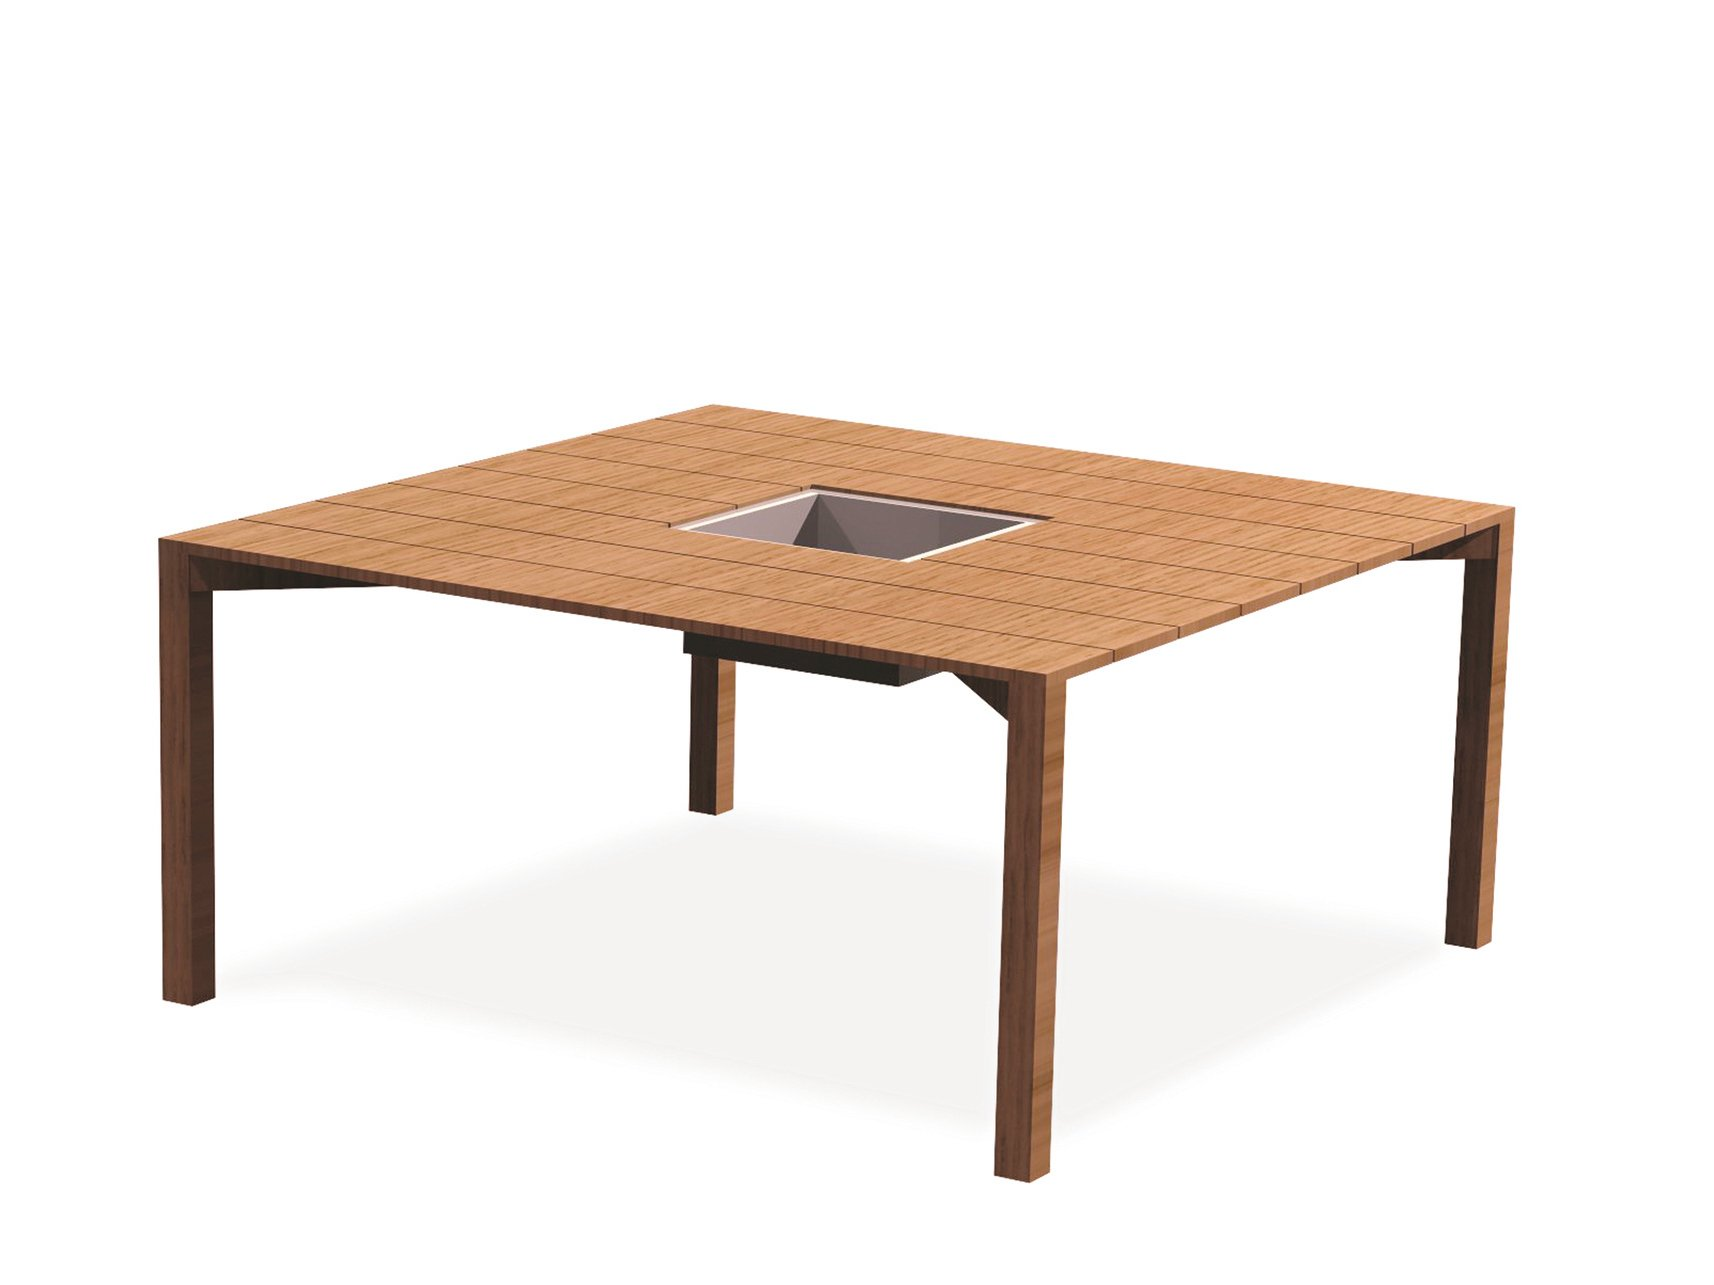 Table de jardin carr e en teck oxn collection oxn by - Table teck carree ...